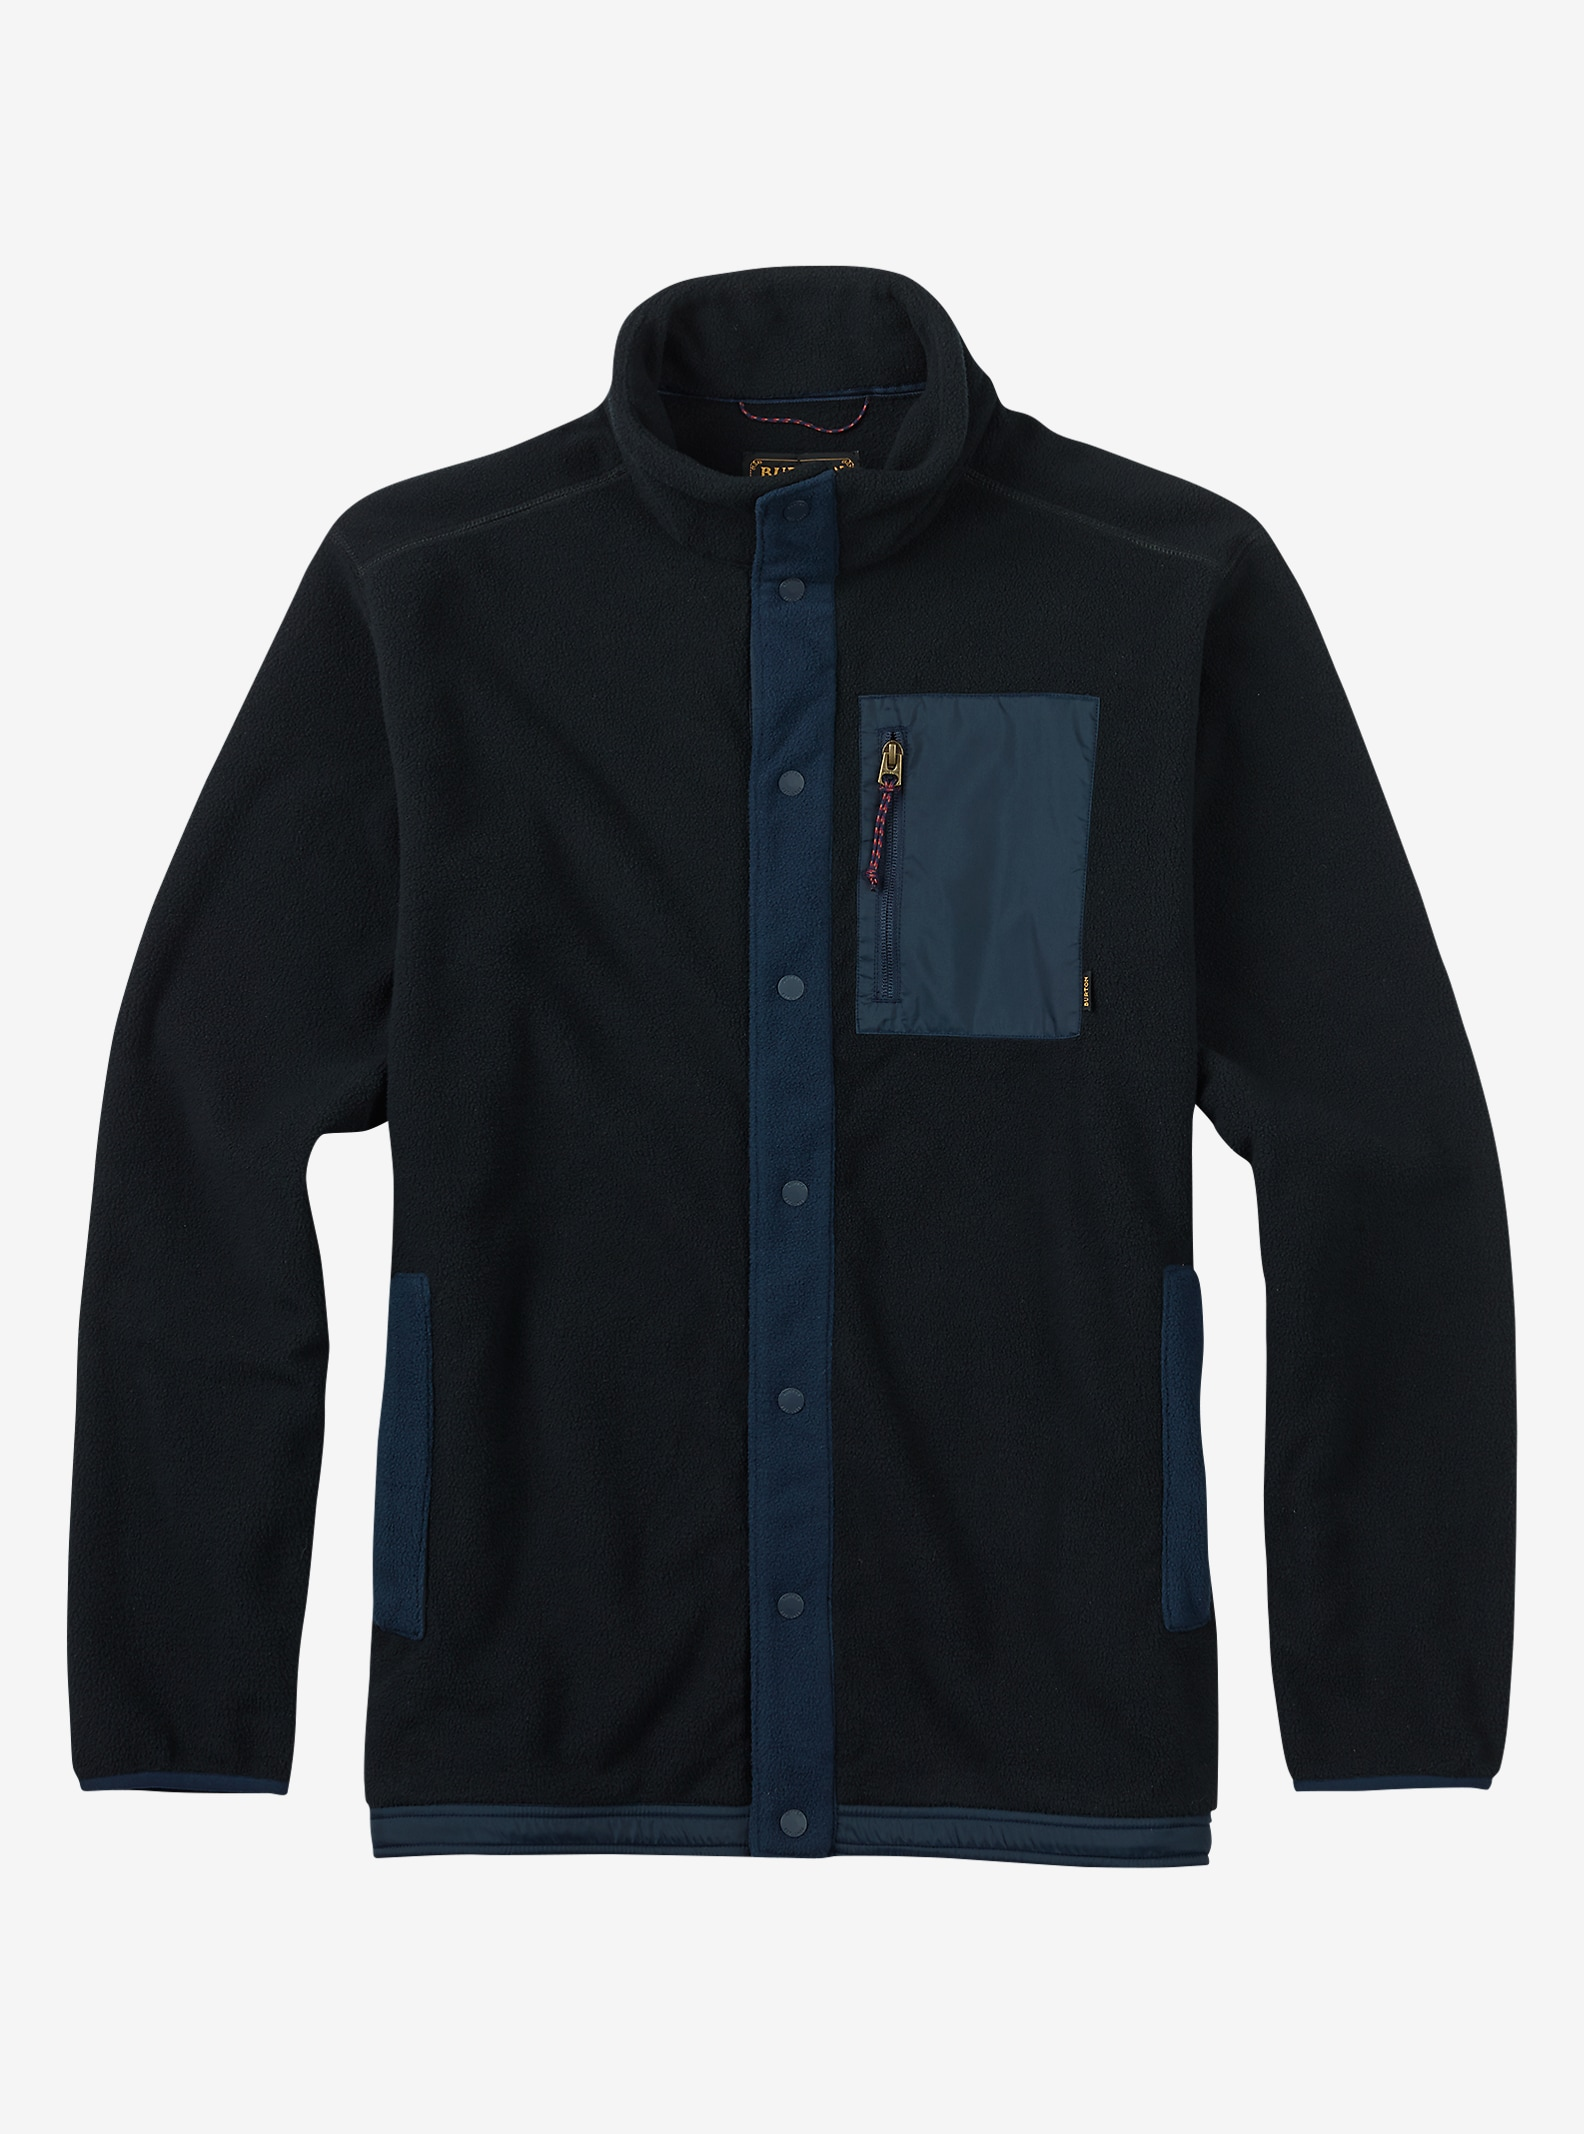 Burton Hearth Snap-Up Fleece shown in True Black